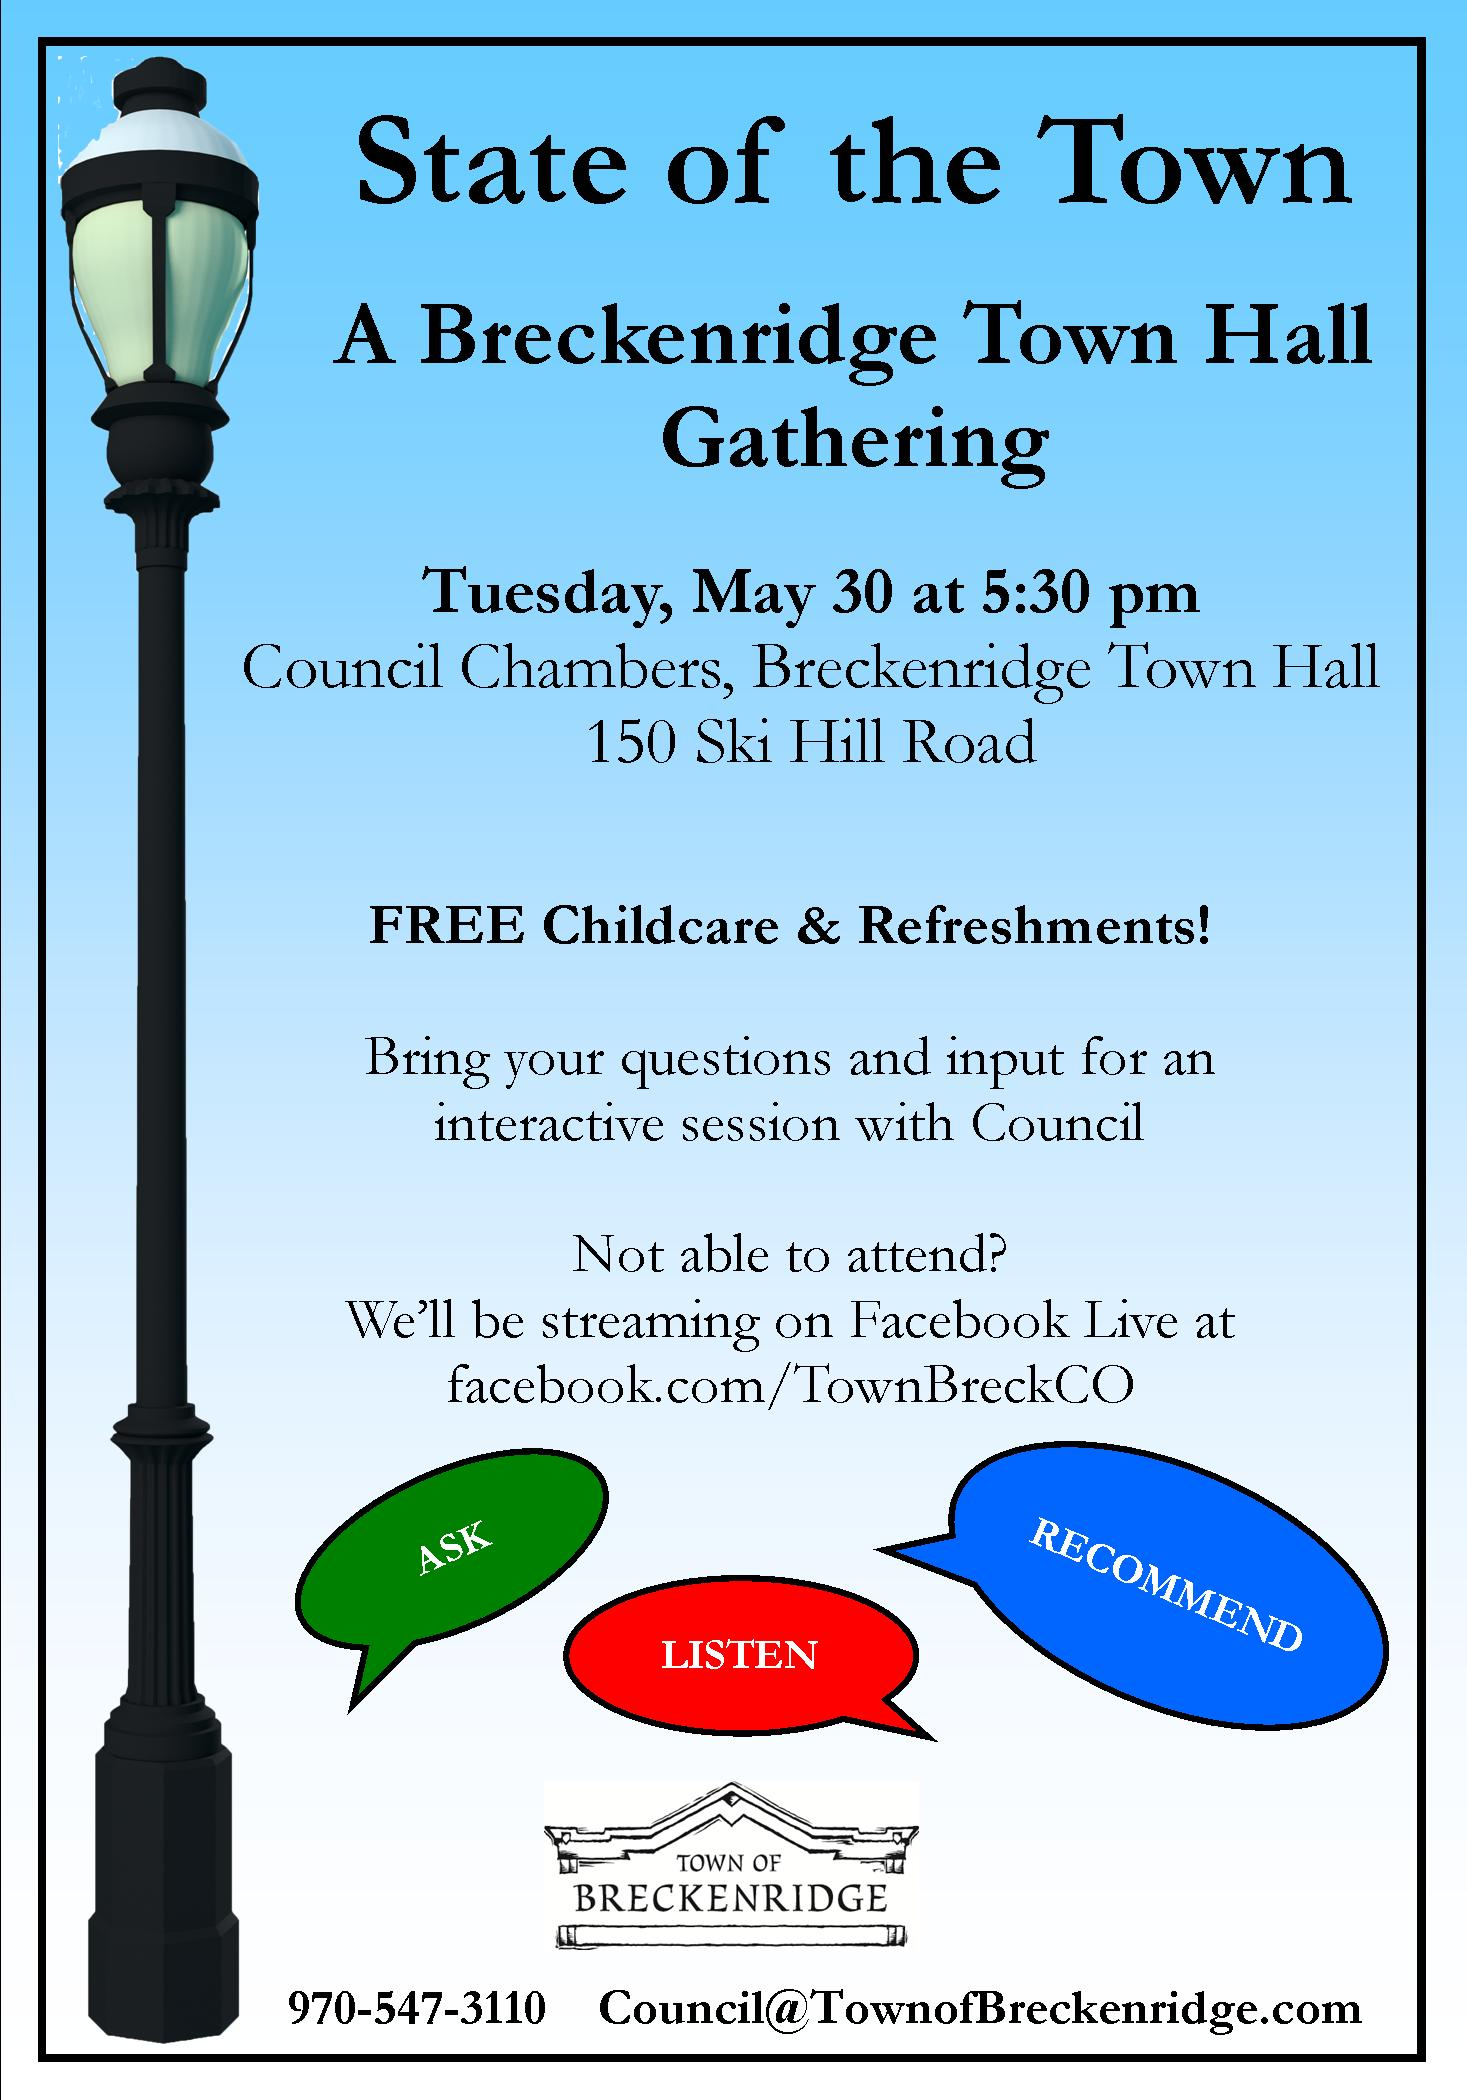 State of the Town, a Town Hall Gathering